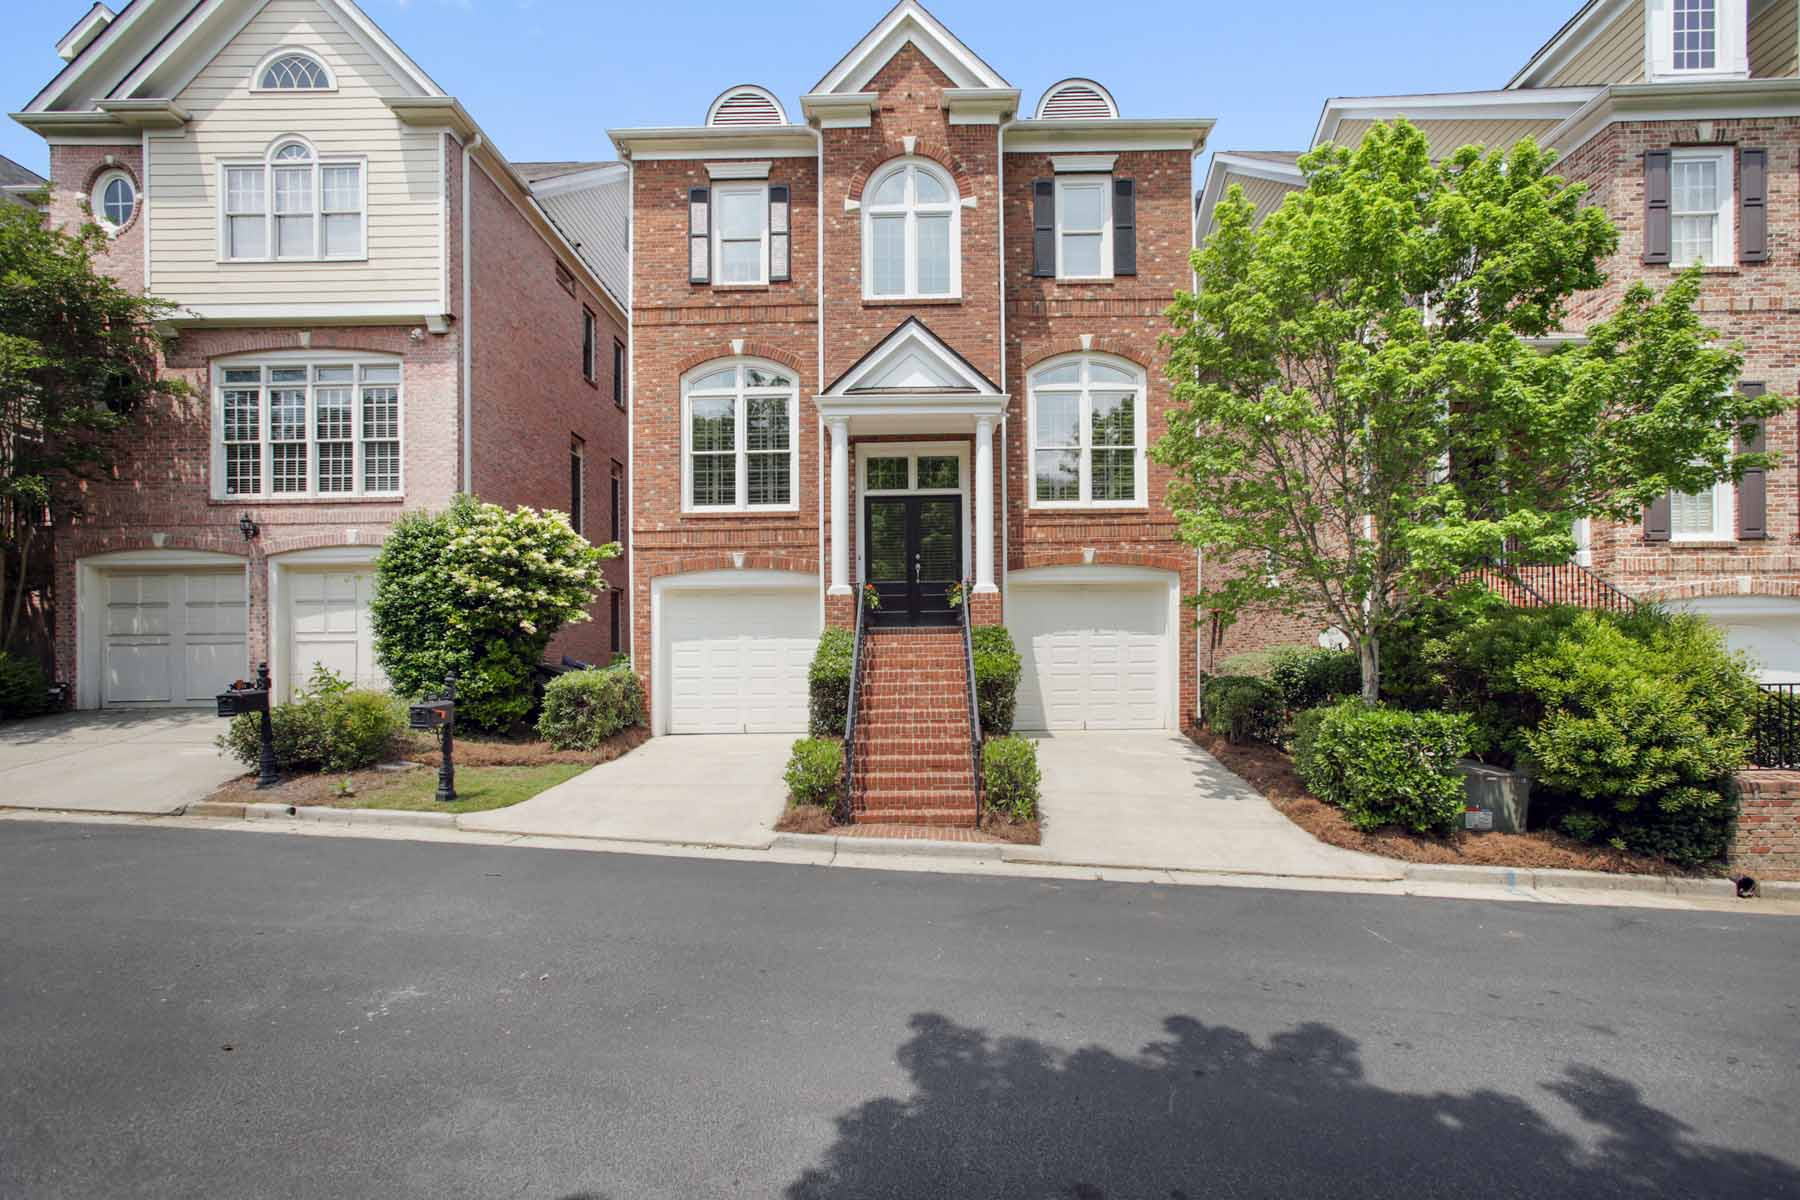 Single Family Home for Sale at Amazing All brick Three level Four bed/Three and a Half Bath Executive Property 1111 Valley Overlook Drive NE Atlanta, Georgia, 30324 United States